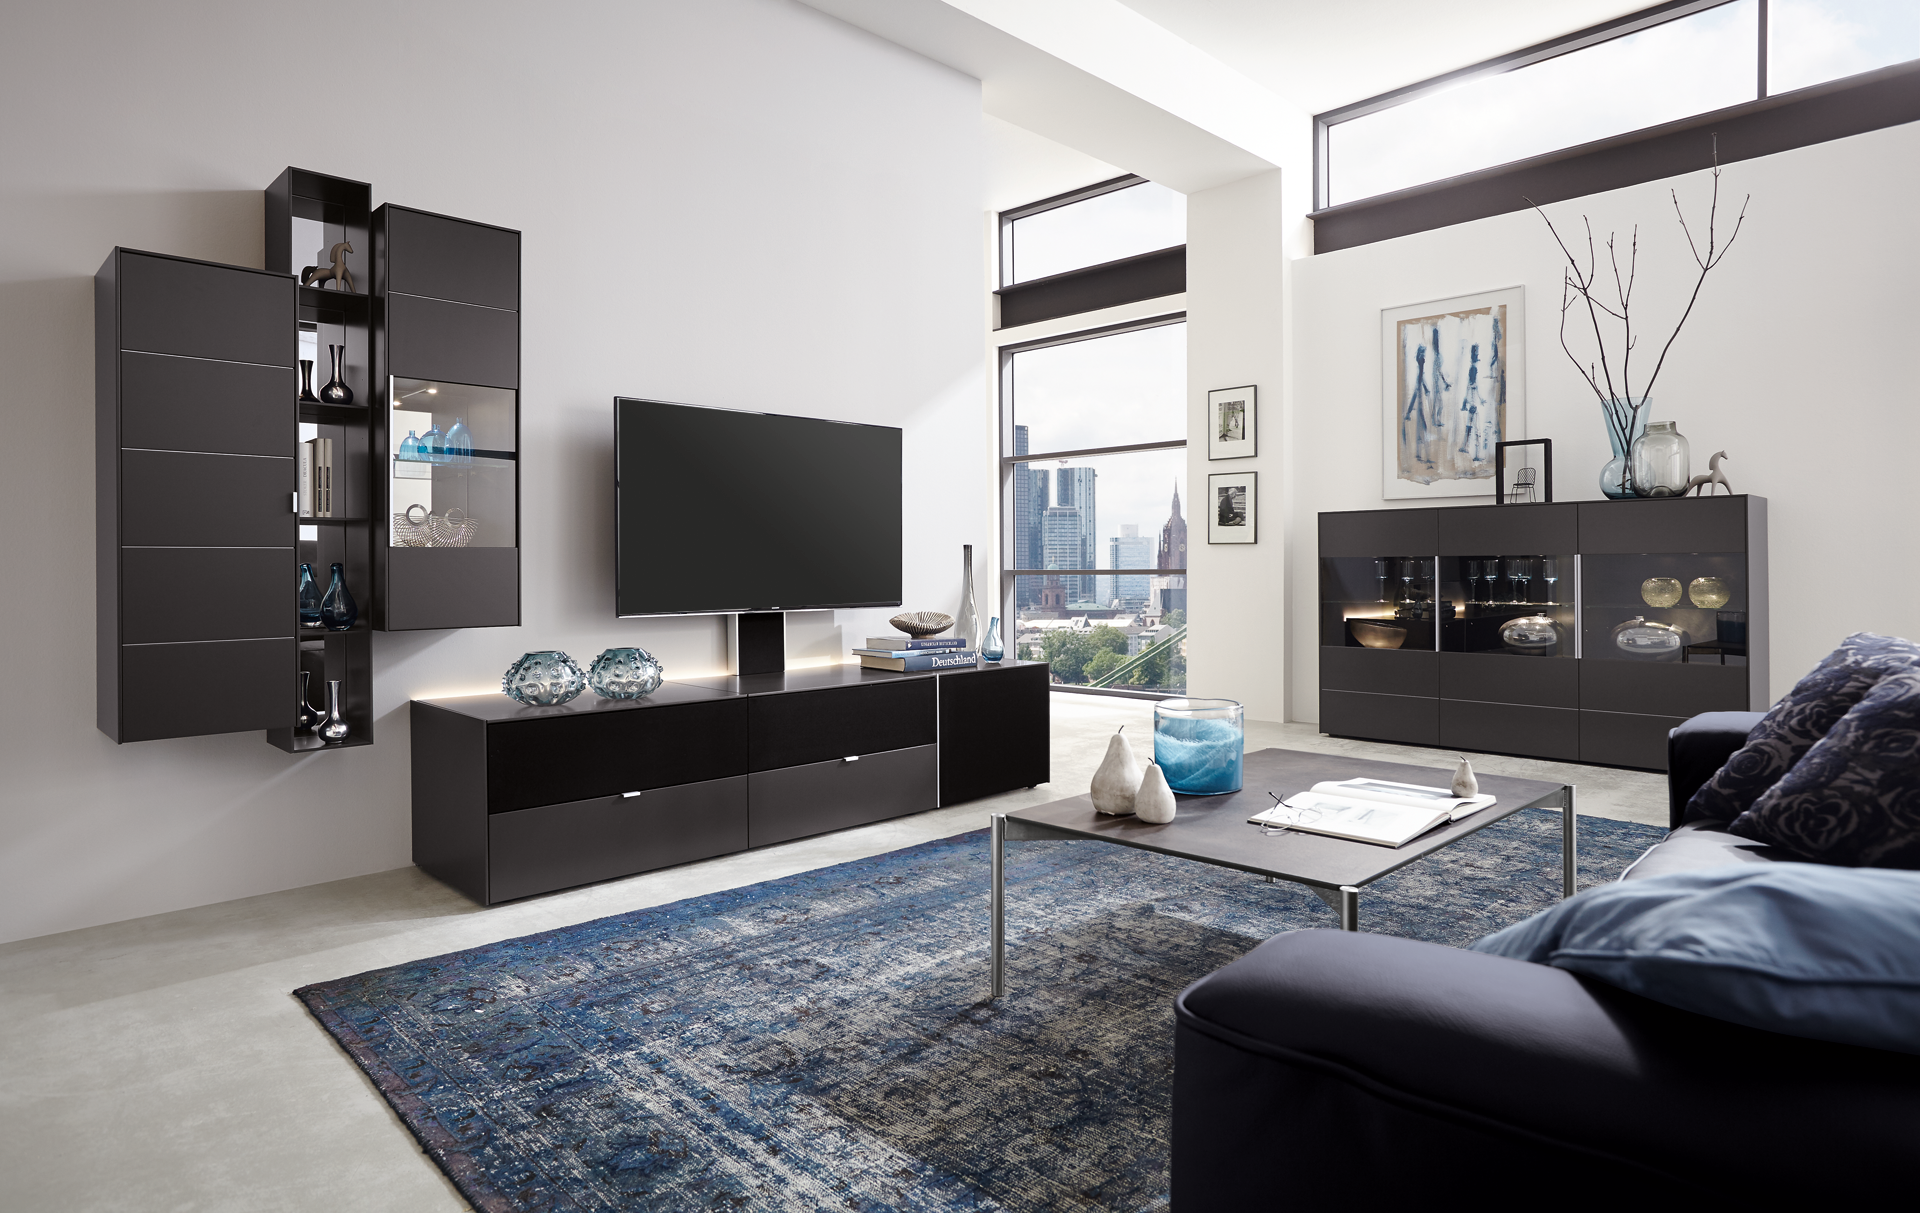 q media heimkino auf der h he der zeit wohntrends blog musterring. Black Bedroom Furniture Sets. Home Design Ideas